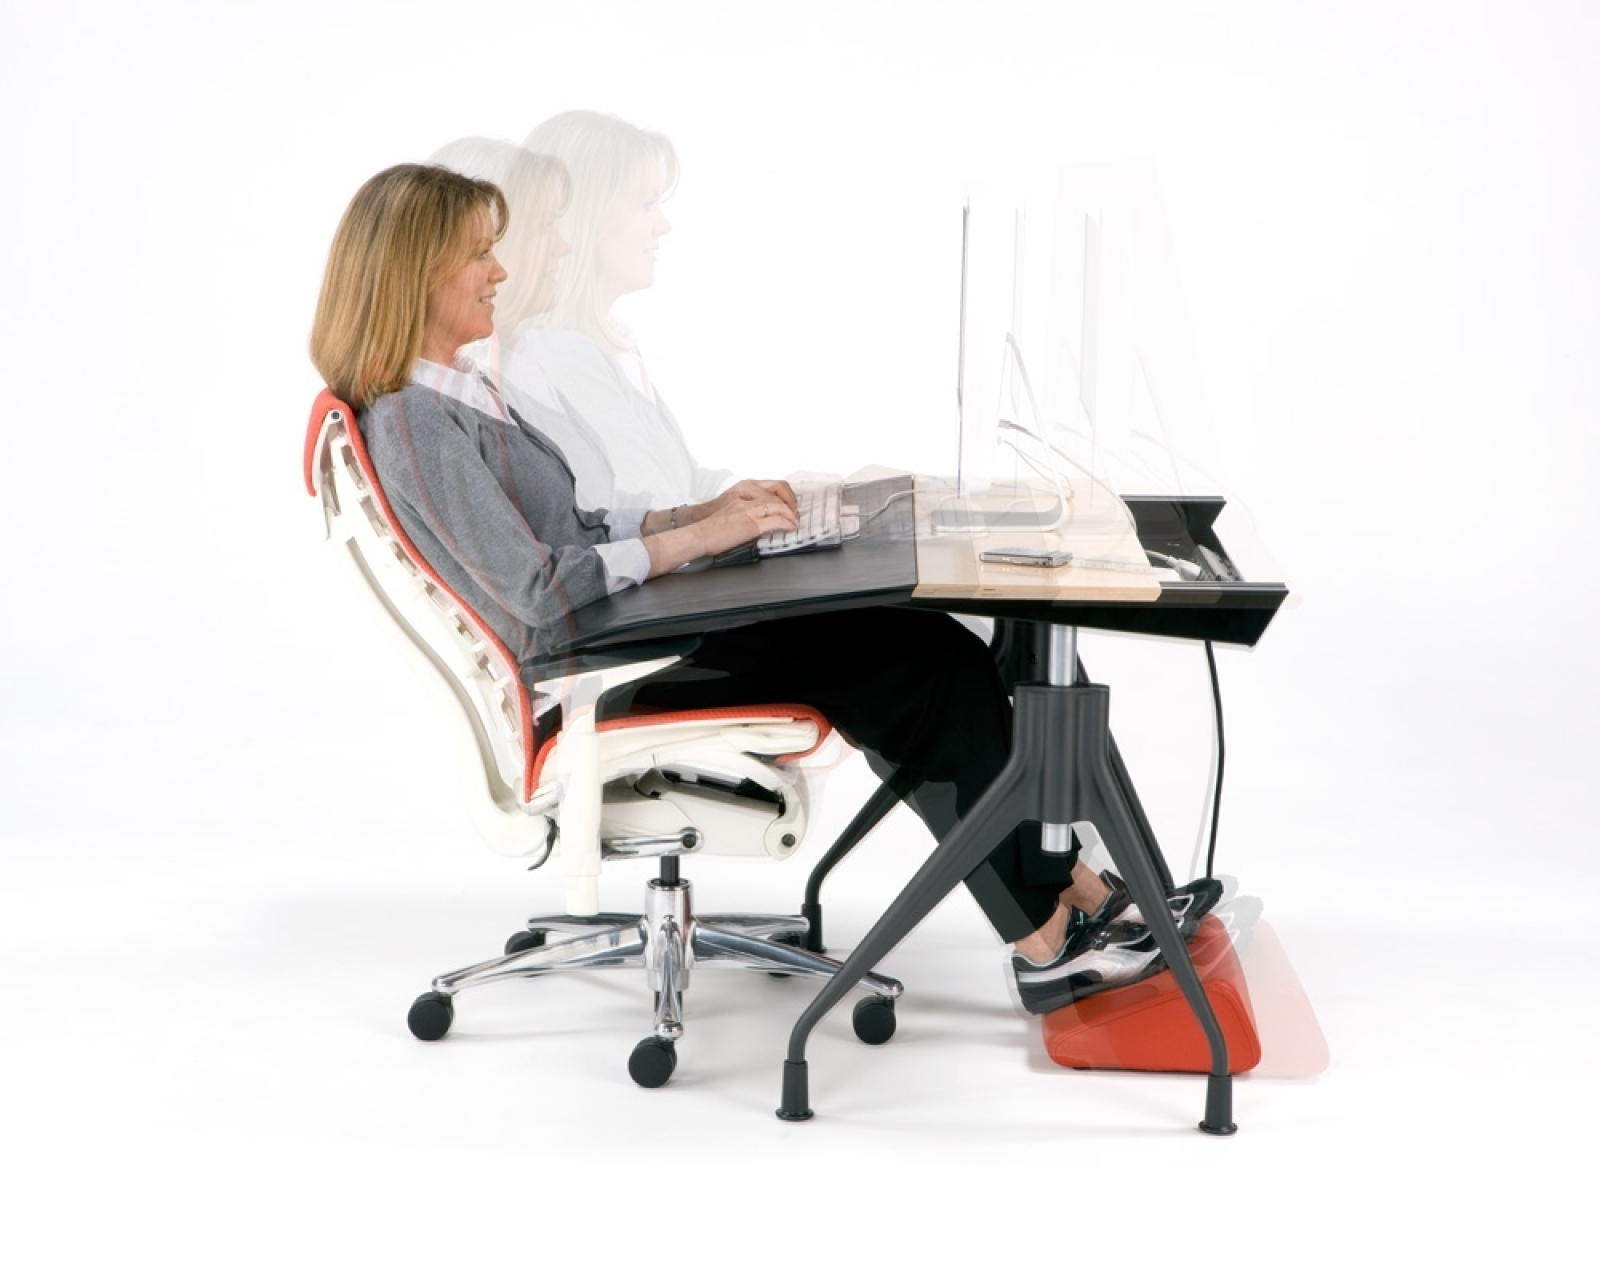 Most Current Computer Desks Ergonomic For Home Within Why We Should Apply Chair And Ergonomic Computer Desk Today (View 15 of 20)